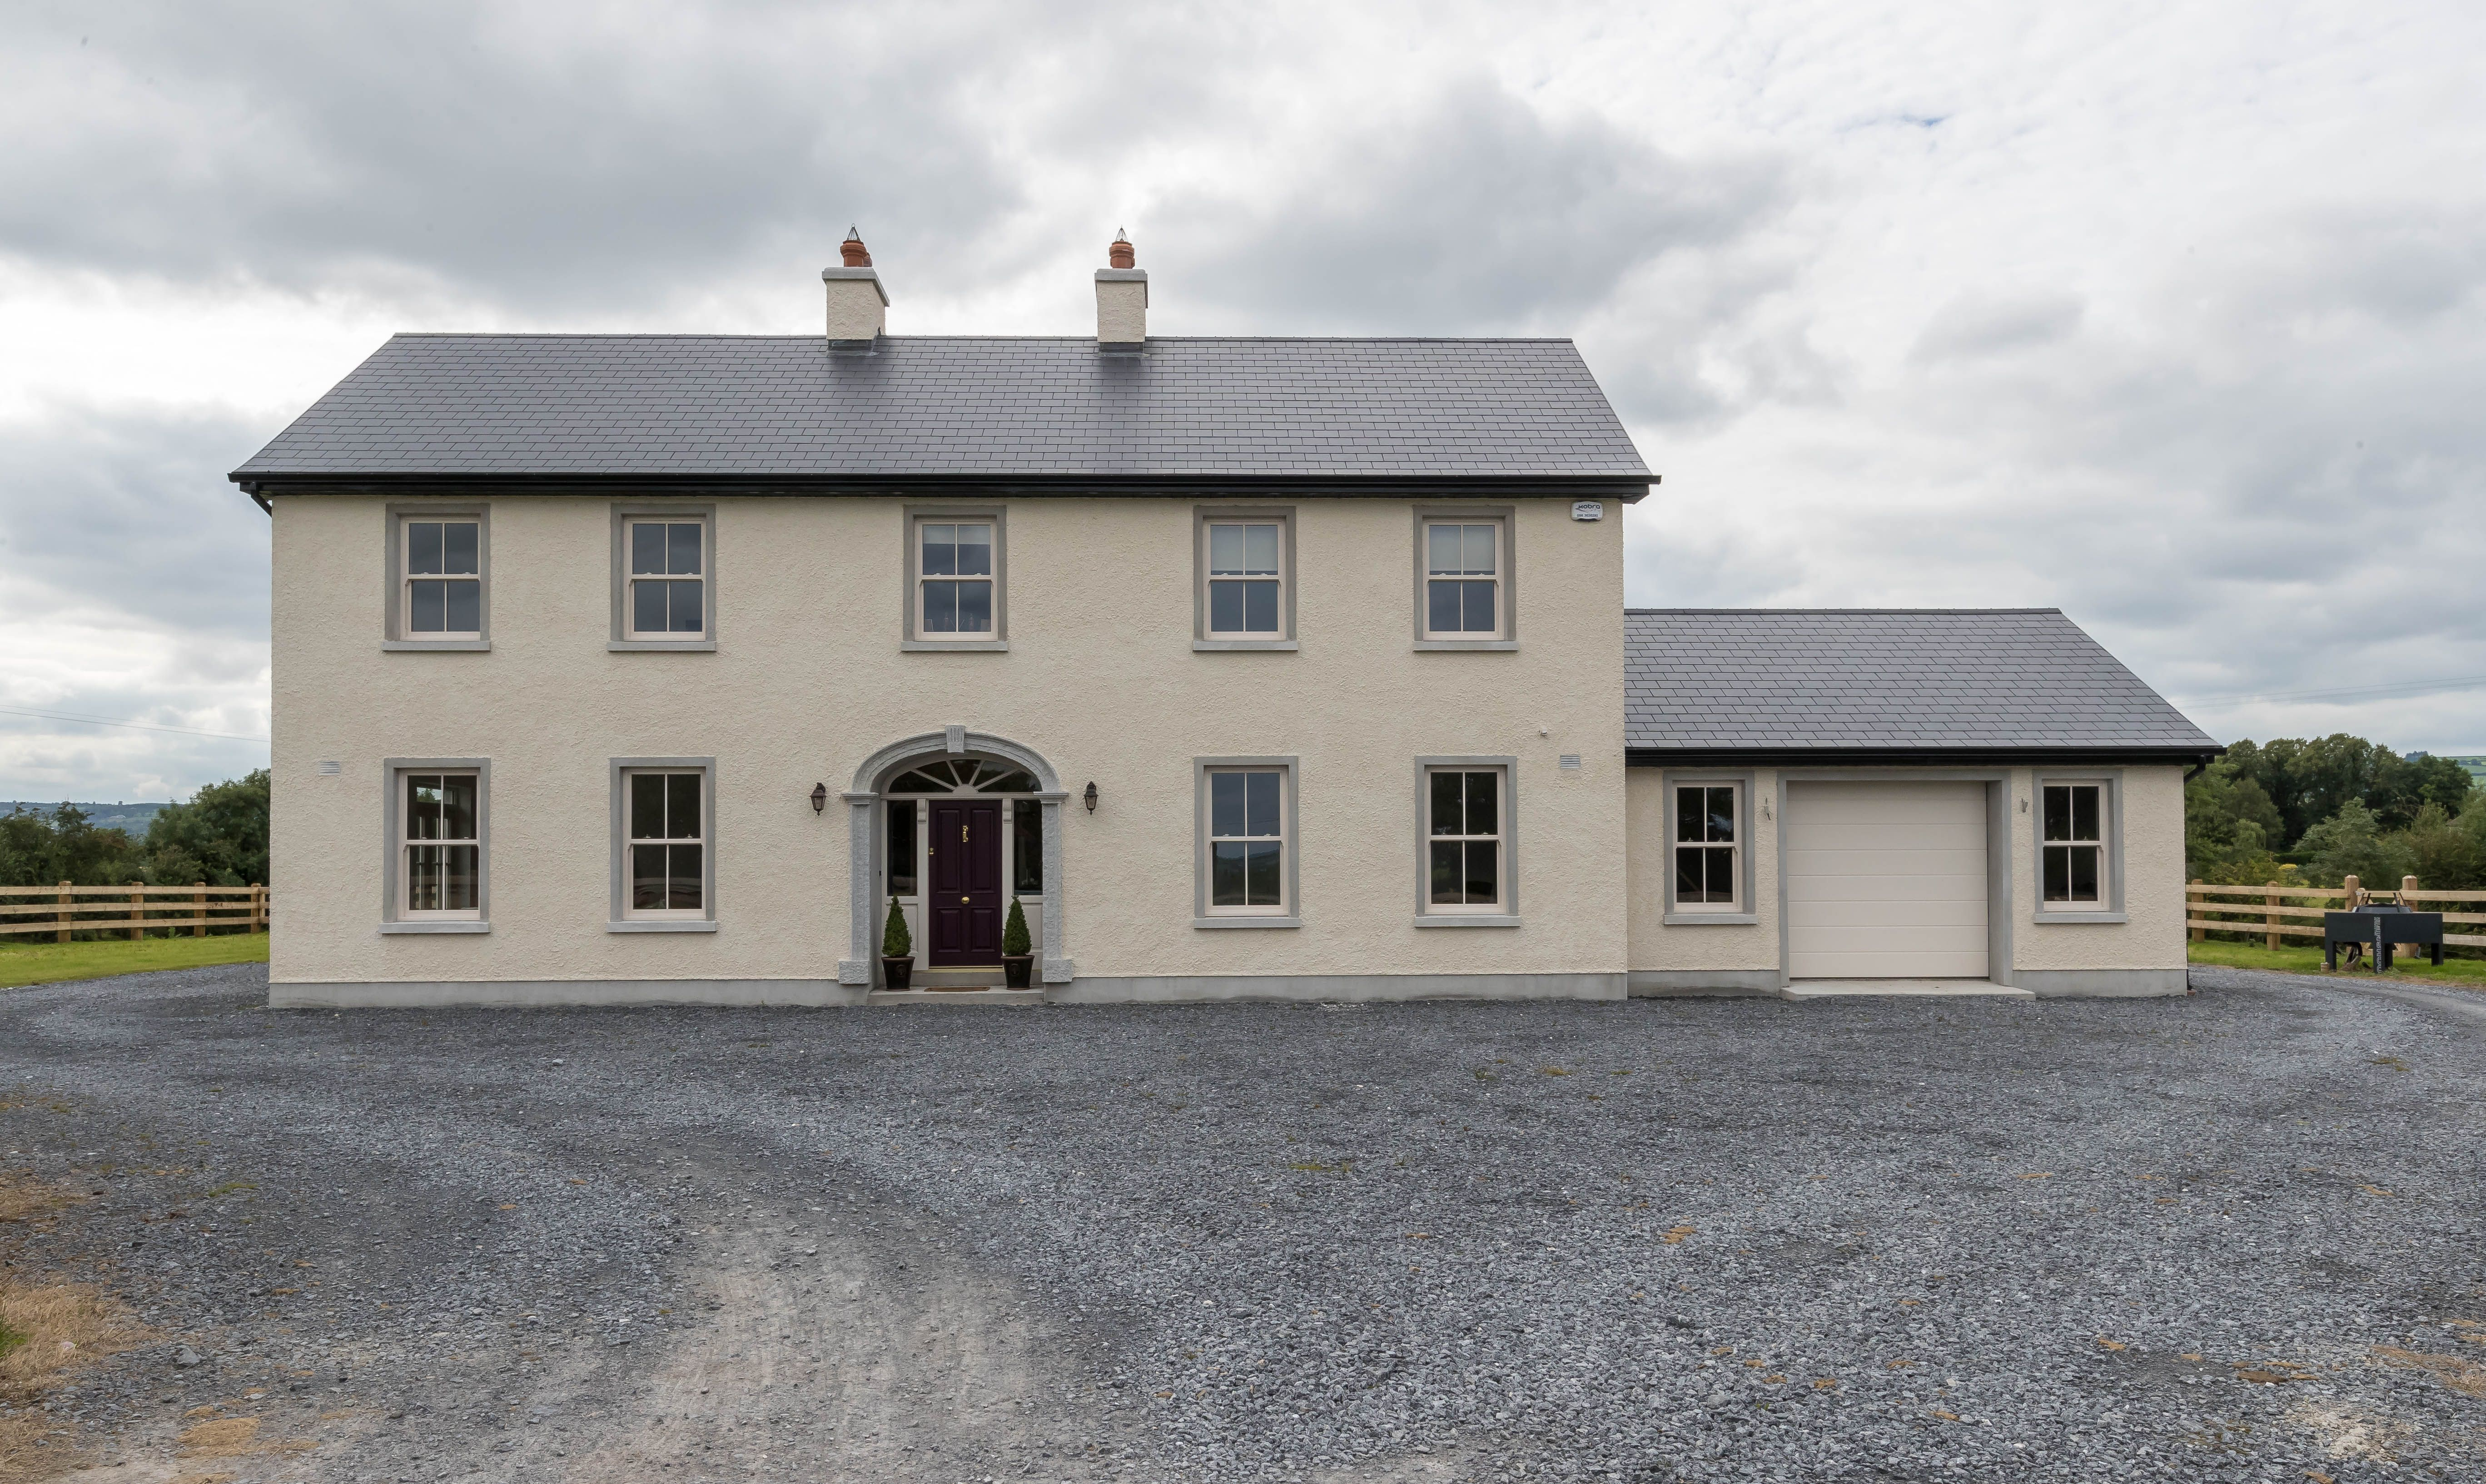 Stunning Family Home With A Rivendale Fibre Cement Roof Beautiful Homes Build Your Own House Building